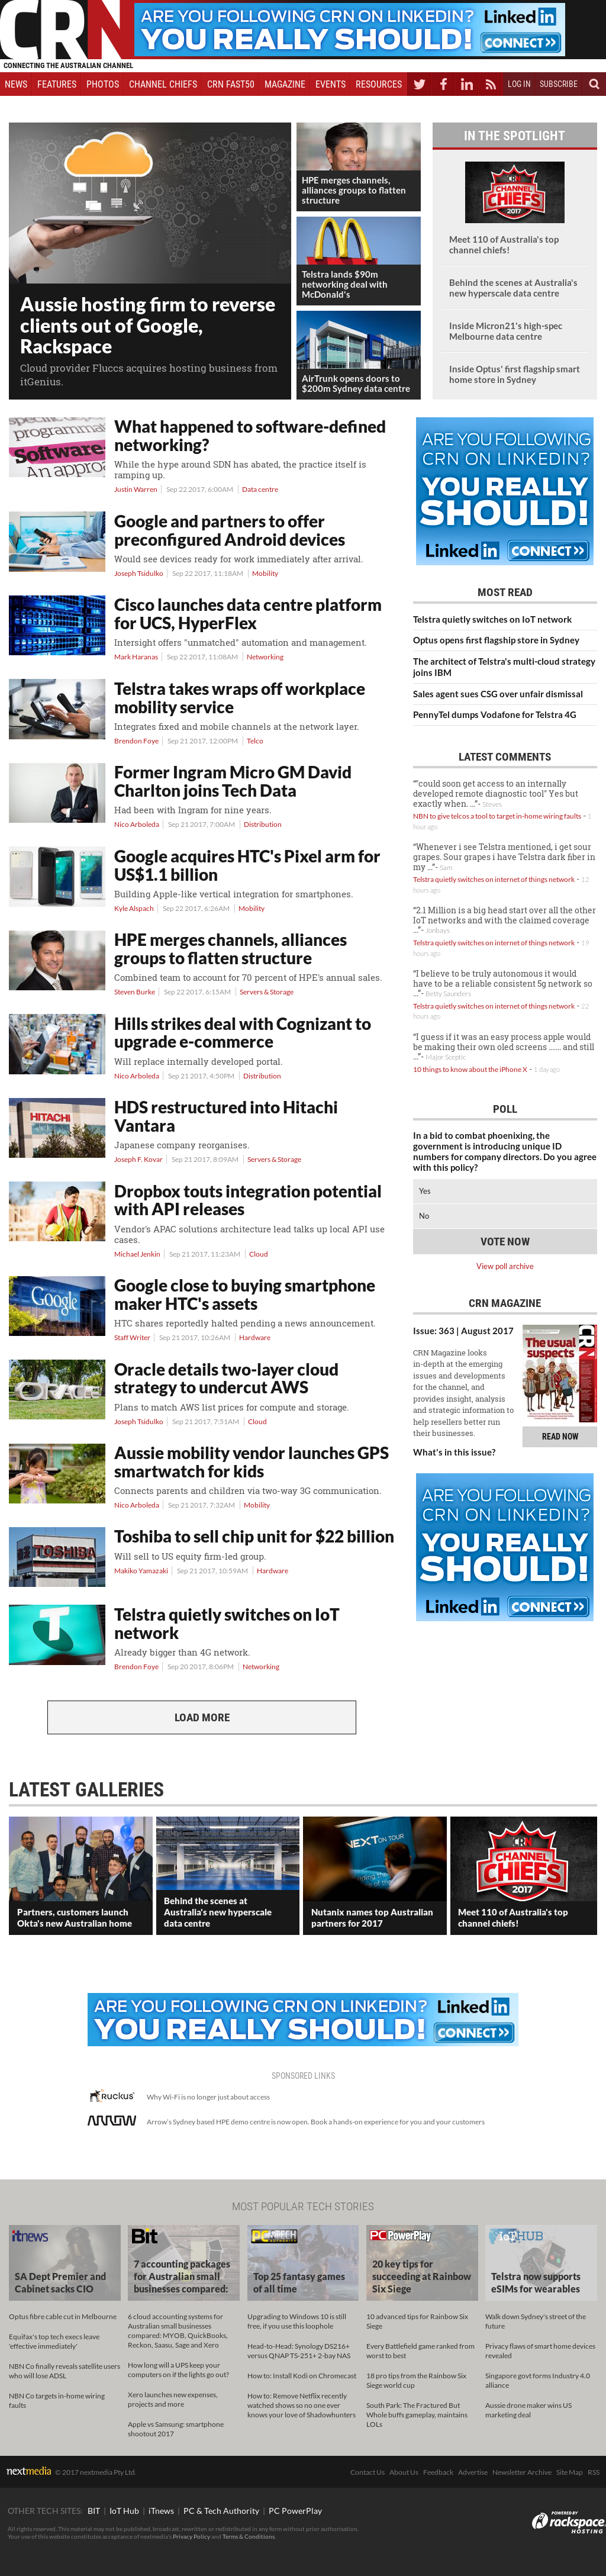 CRN - Computer Reseller News Competitors, Revenue and